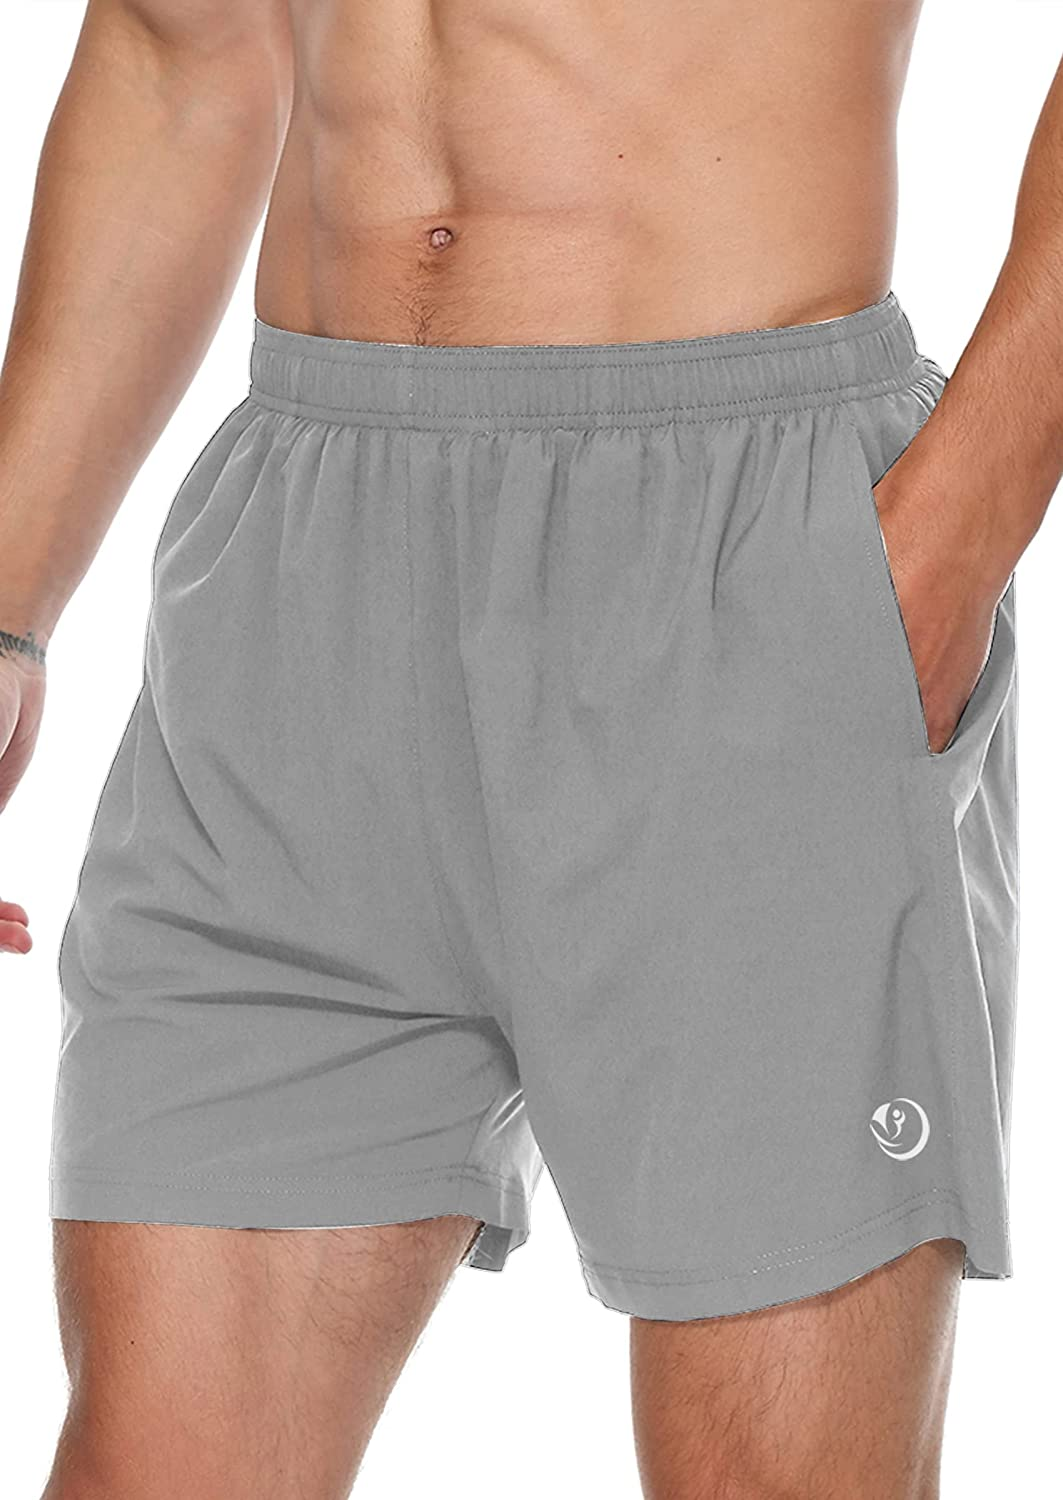 Relaude Fitness Credence Men's Running Shorts NEW before selling Athletic Workout 5 Gym Inch